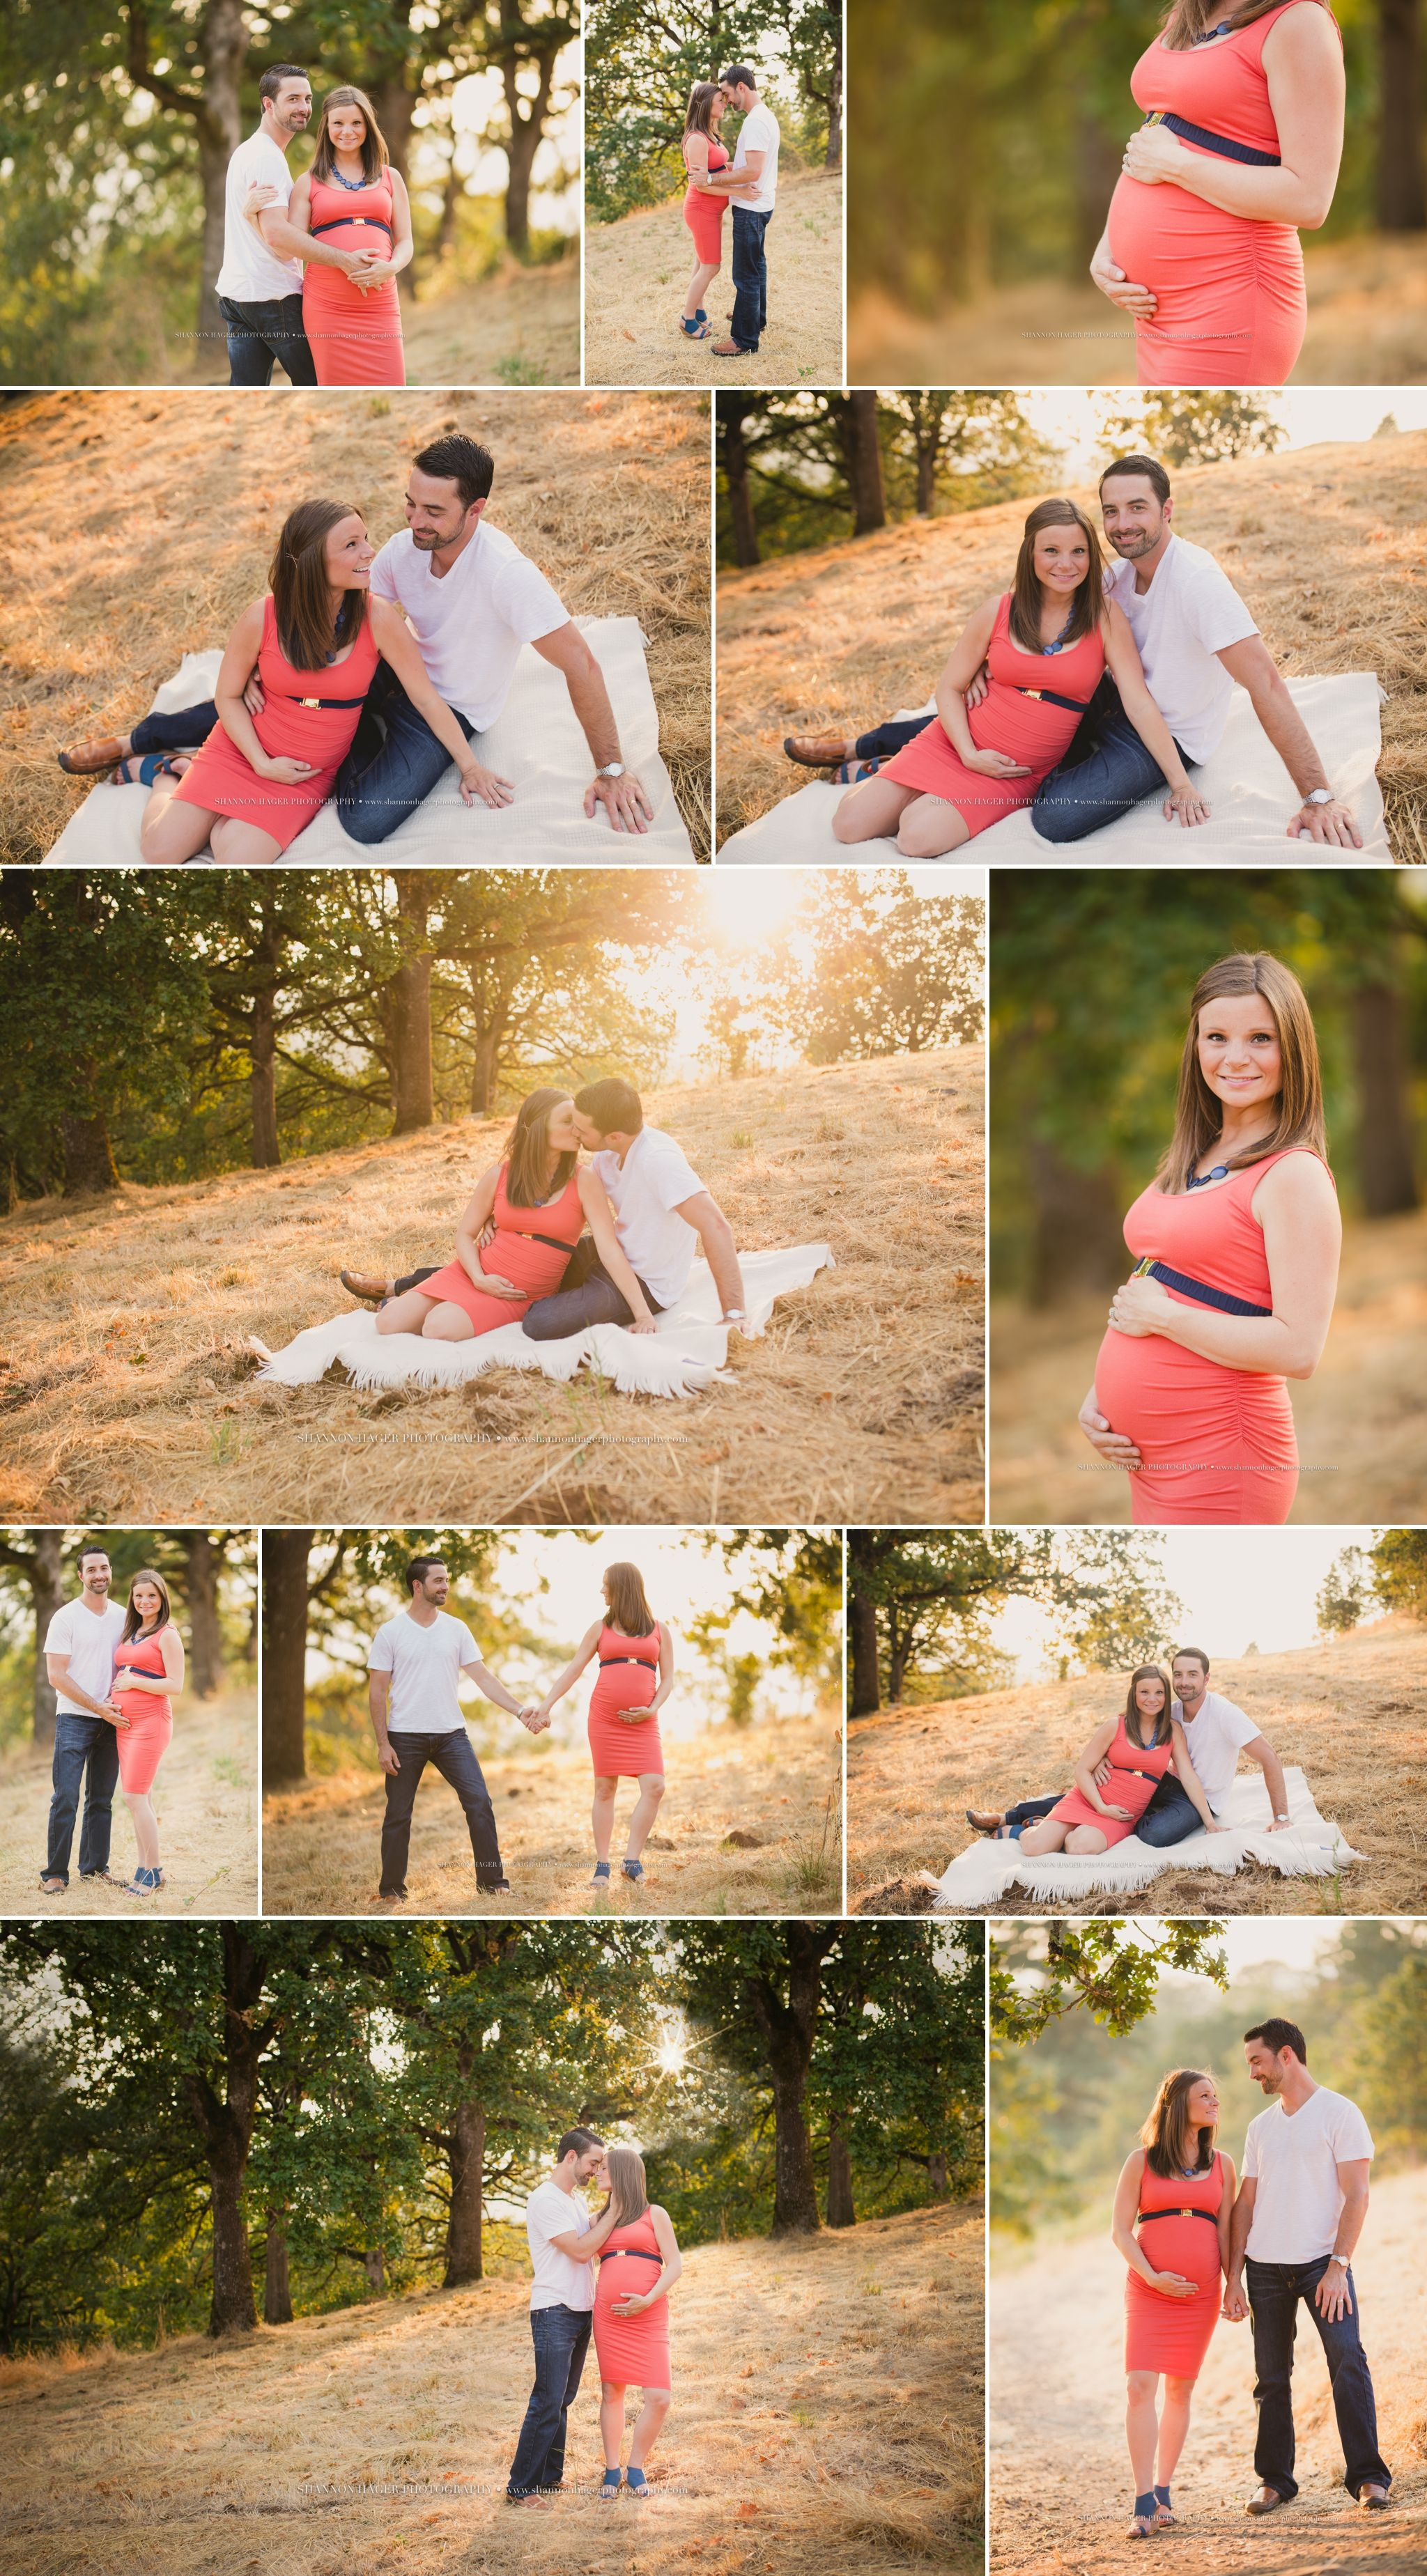 Sunset Summer Maternity Session Outdoors, Portland Maternity